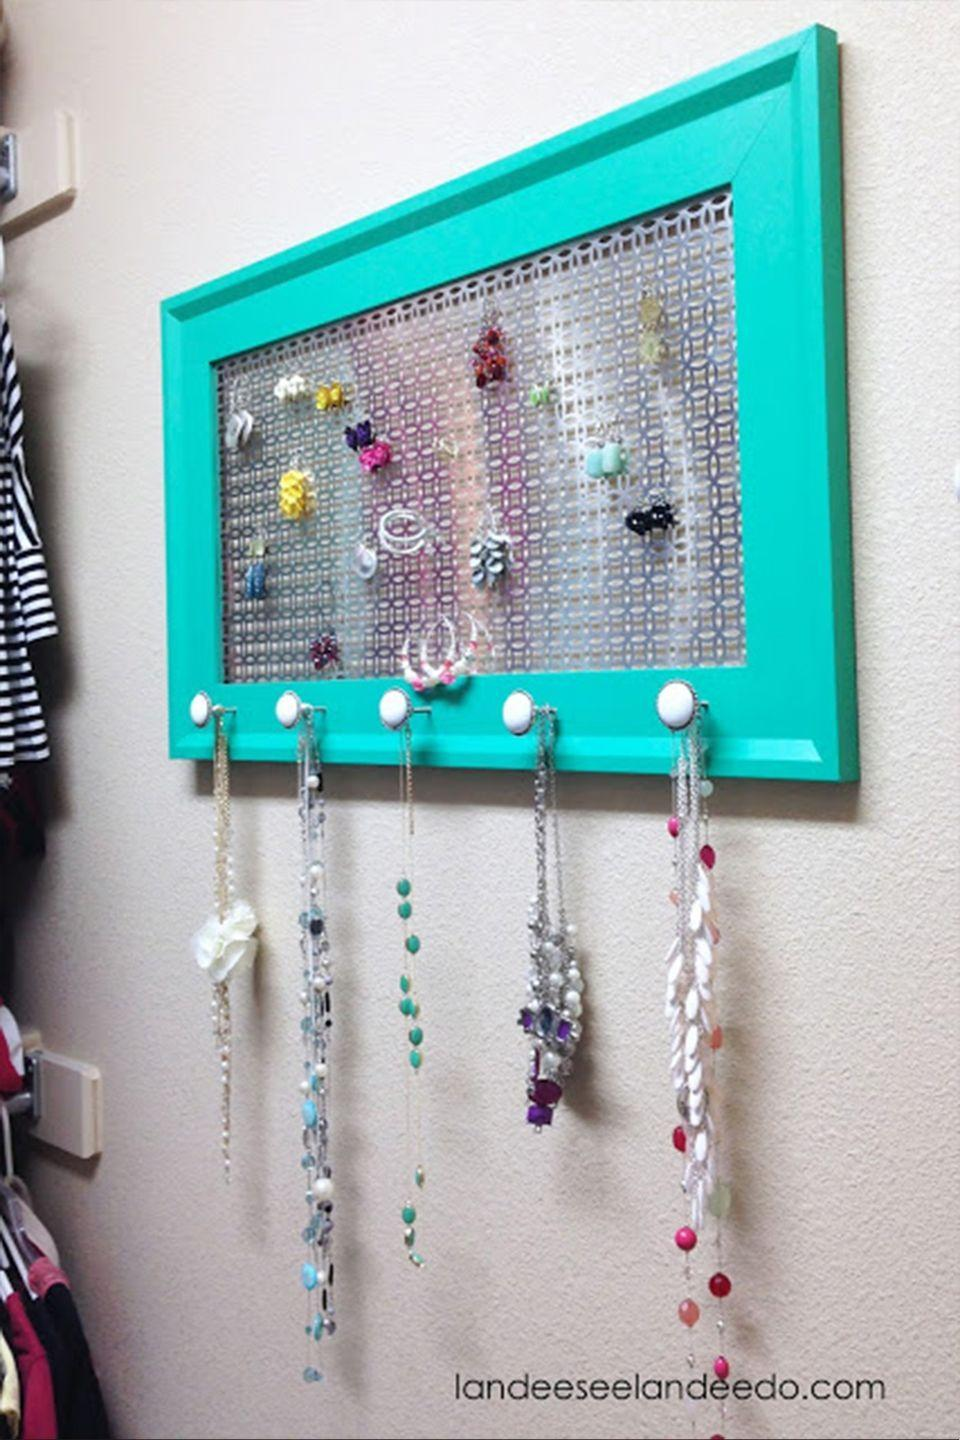 """<p>You and your siblings have given mom lots of handmade jewelry over the years, from macaroni necklaces to funky earrings. Now, it's time to give her a stylish way to organize 'em. </p><p><a href=""""https://www.landeeseelandeedo.com/diy-jewelry-organizer"""" rel=""""nofollow noopener"""" target=""""_blank"""" data-ylk=""""slk:Get the tutorial at Landeelu »"""" class=""""link rapid-noclick-resp""""><em>Get the tutorial at Landeelu »</em></a> </p>"""